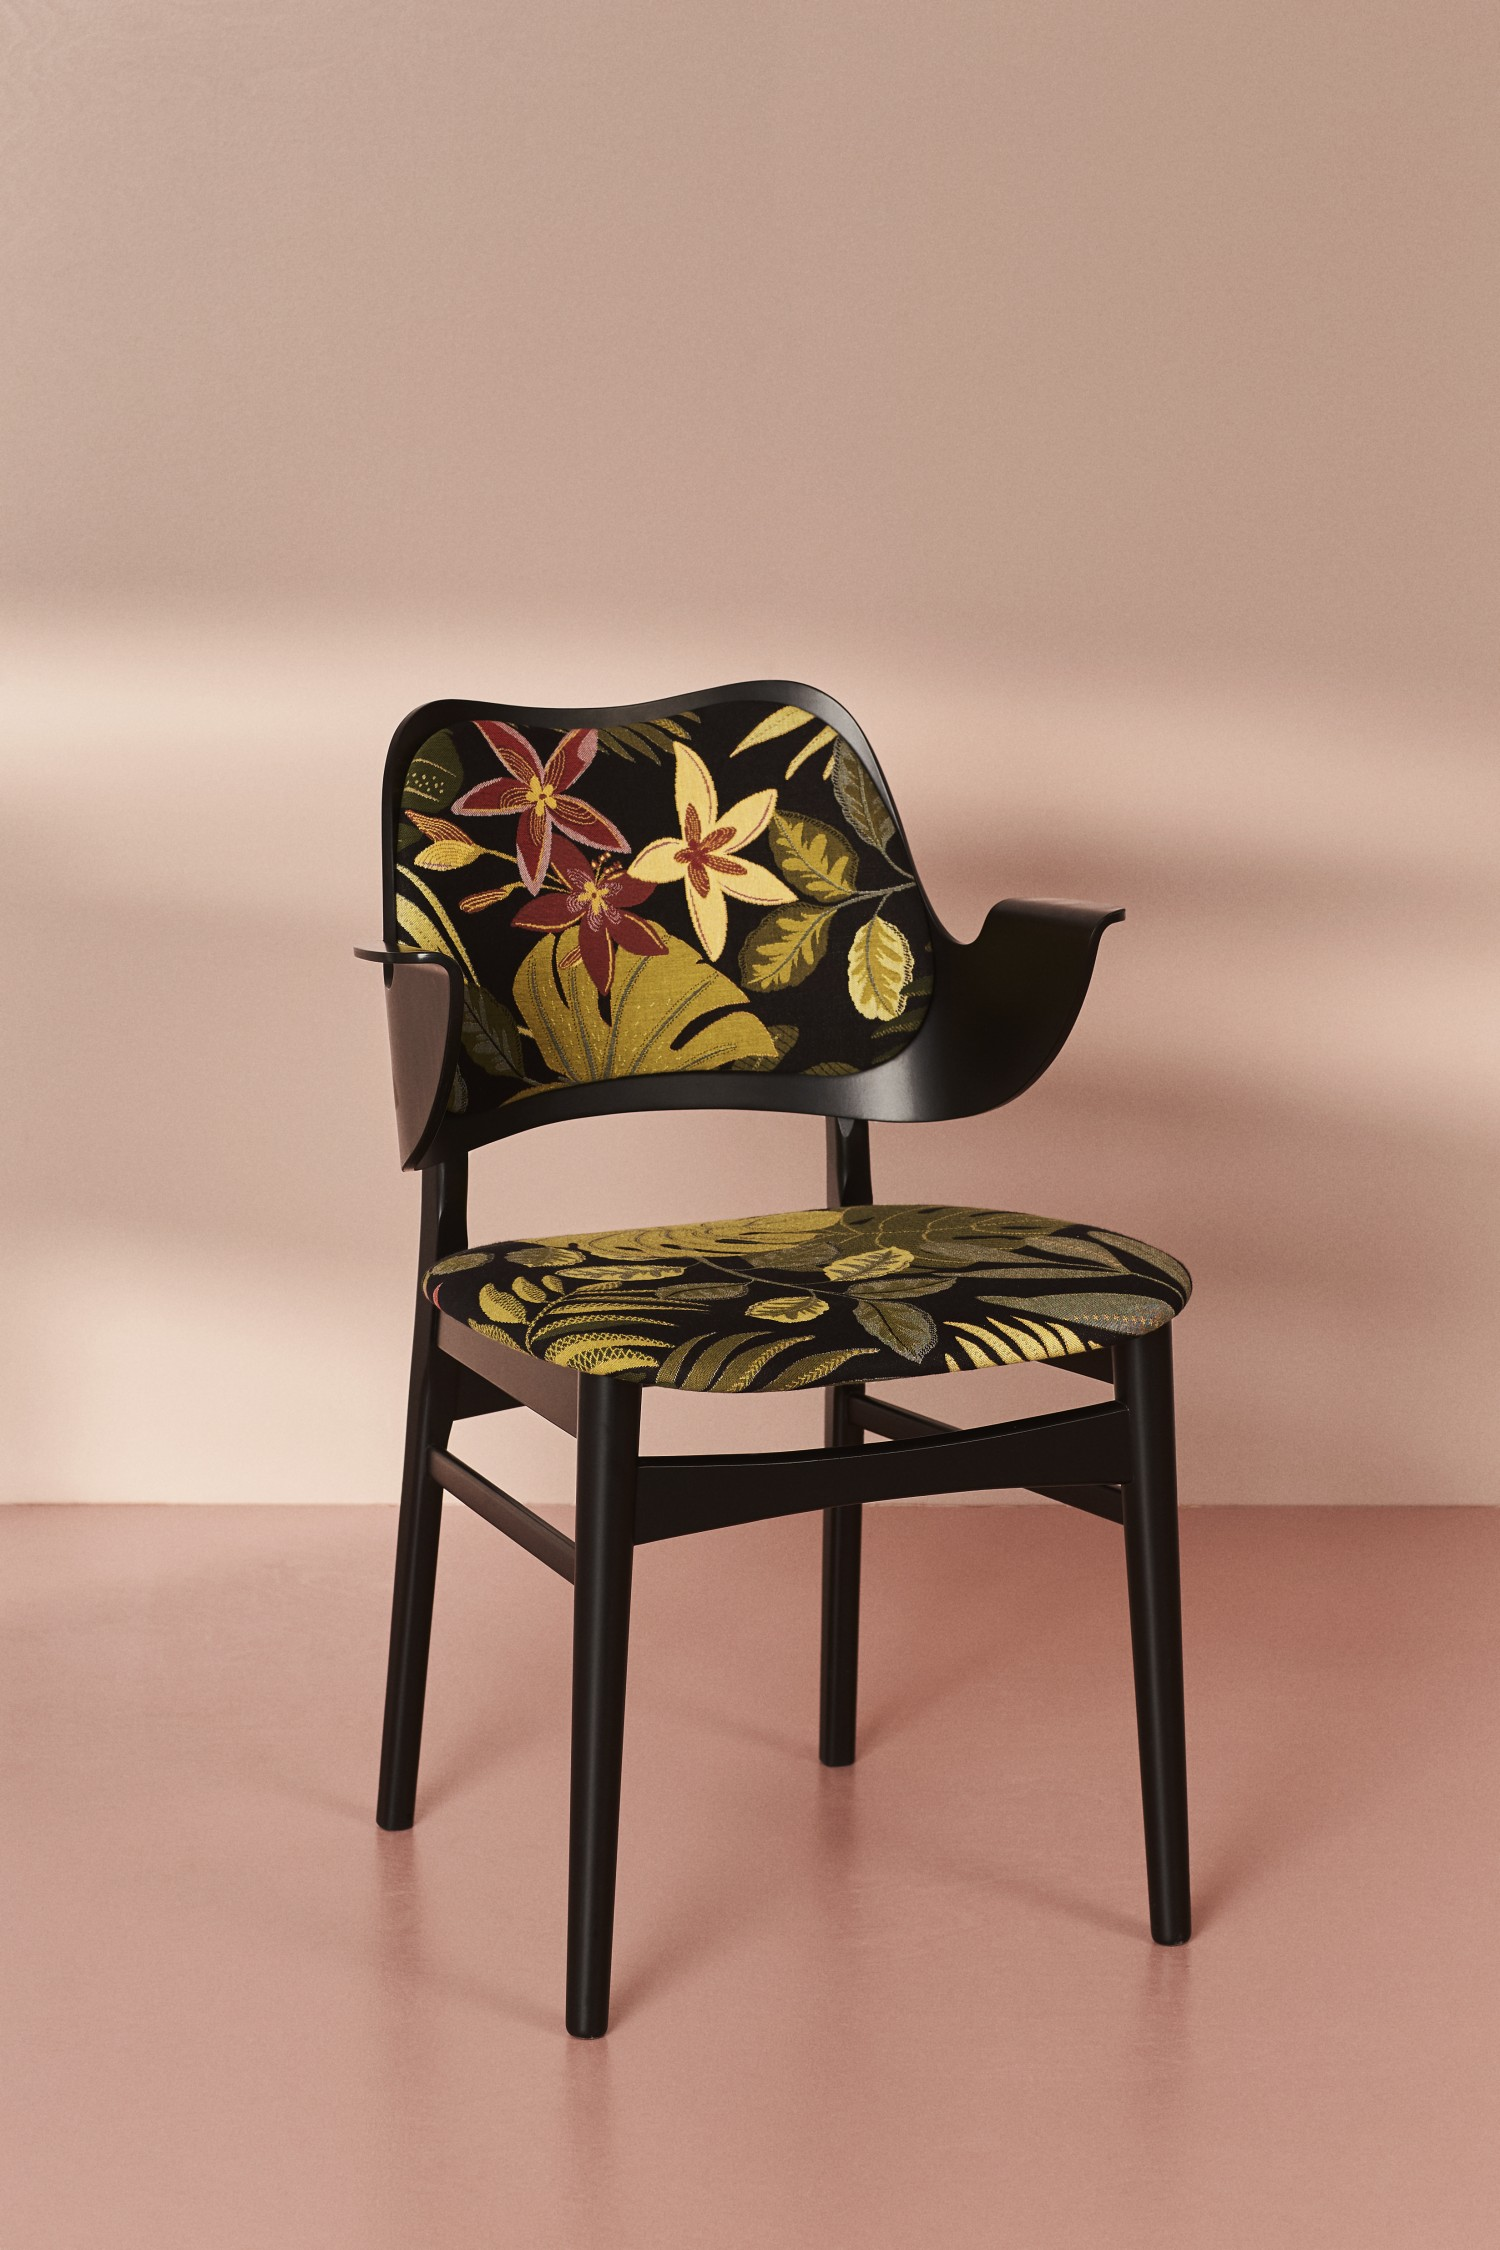 2405011-warmnordic-furniture-gesture-diningchairs-black-lacquered-seat-floral-back-black-lacquered-vnude